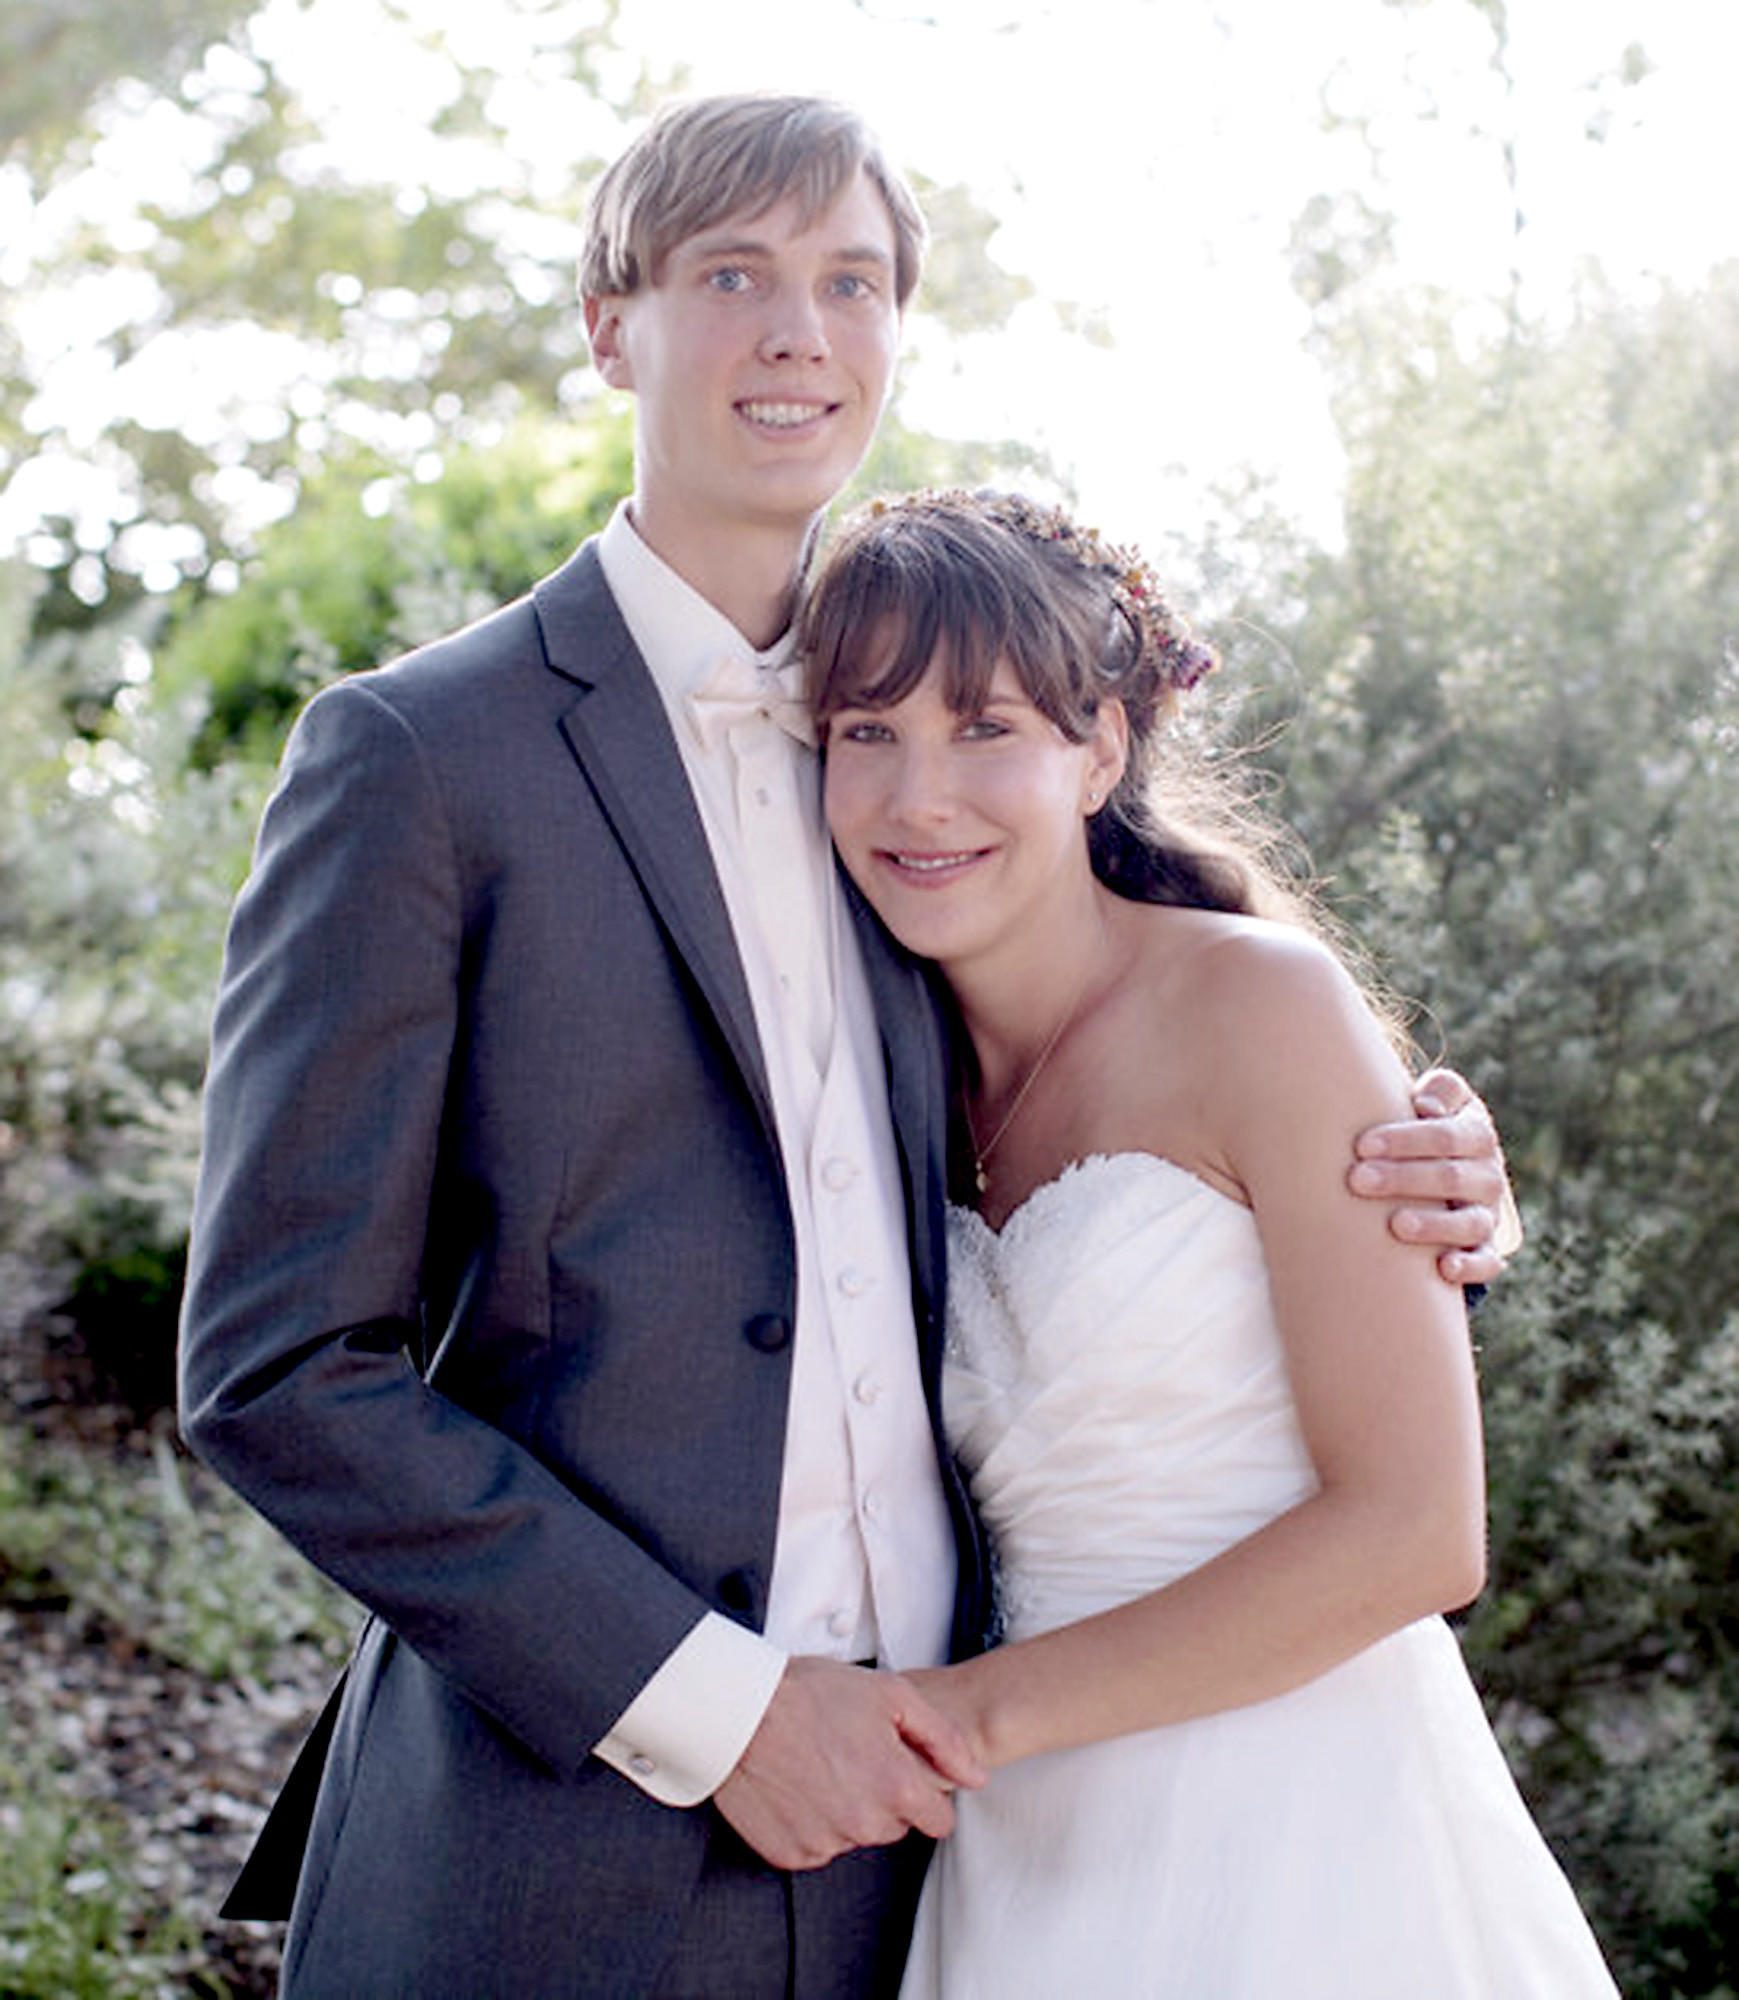 Charles Eben Drost and Megann Elsie Pratt were married at Shoreline Community Church in Santa Barbara.